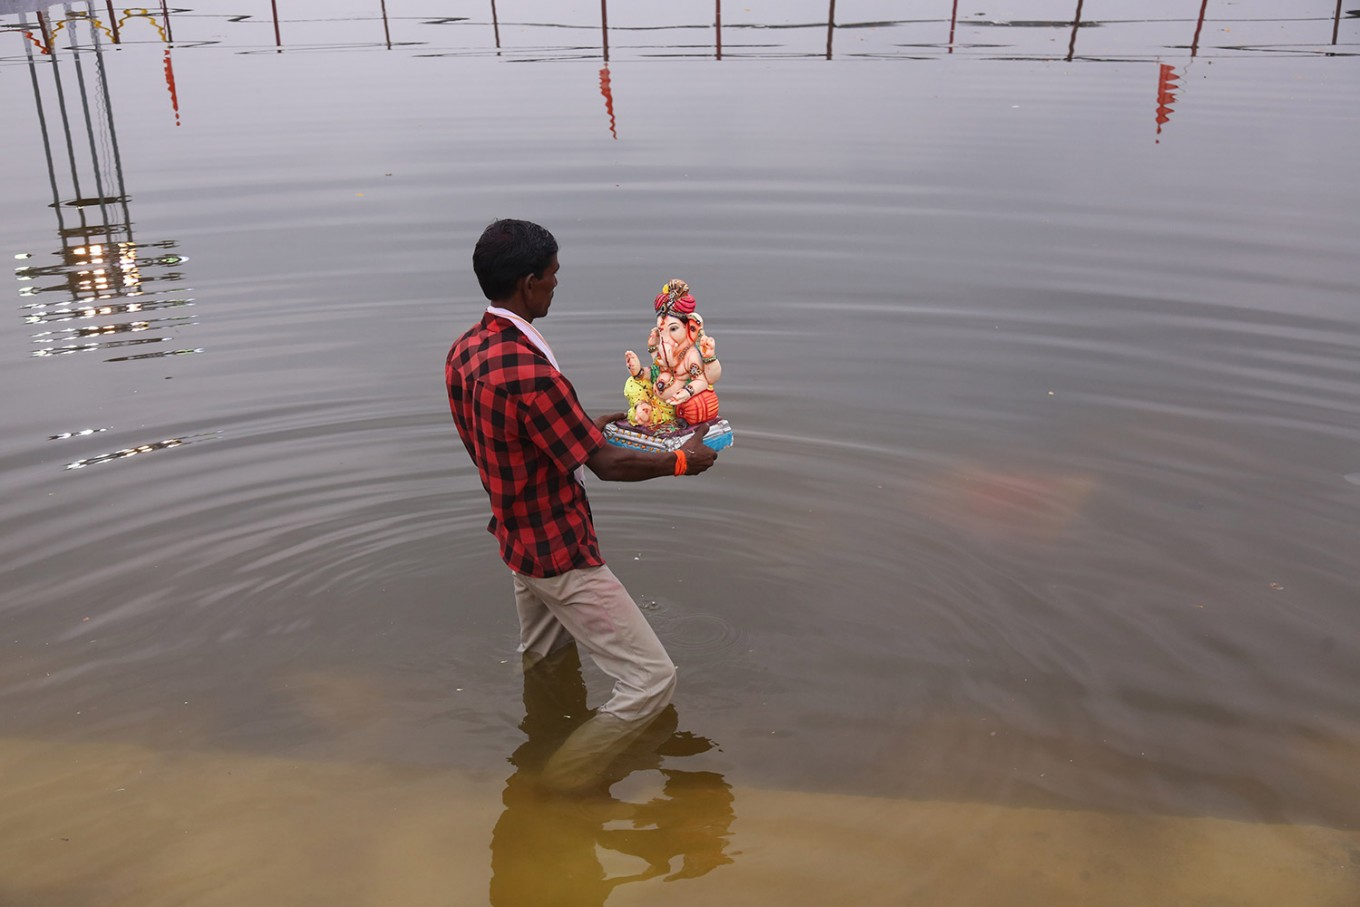 An Indian worker prepares to immerse an idol of elephant-headed Hindu god Ganesha in a lake during Ganesh Chaturthi festival in Hyderabad, India, Tuesday, Sept. 13, 2016. The immersion of idols after worship marks the end of the annual festival. AP Photo/Mahesh Kumar A.